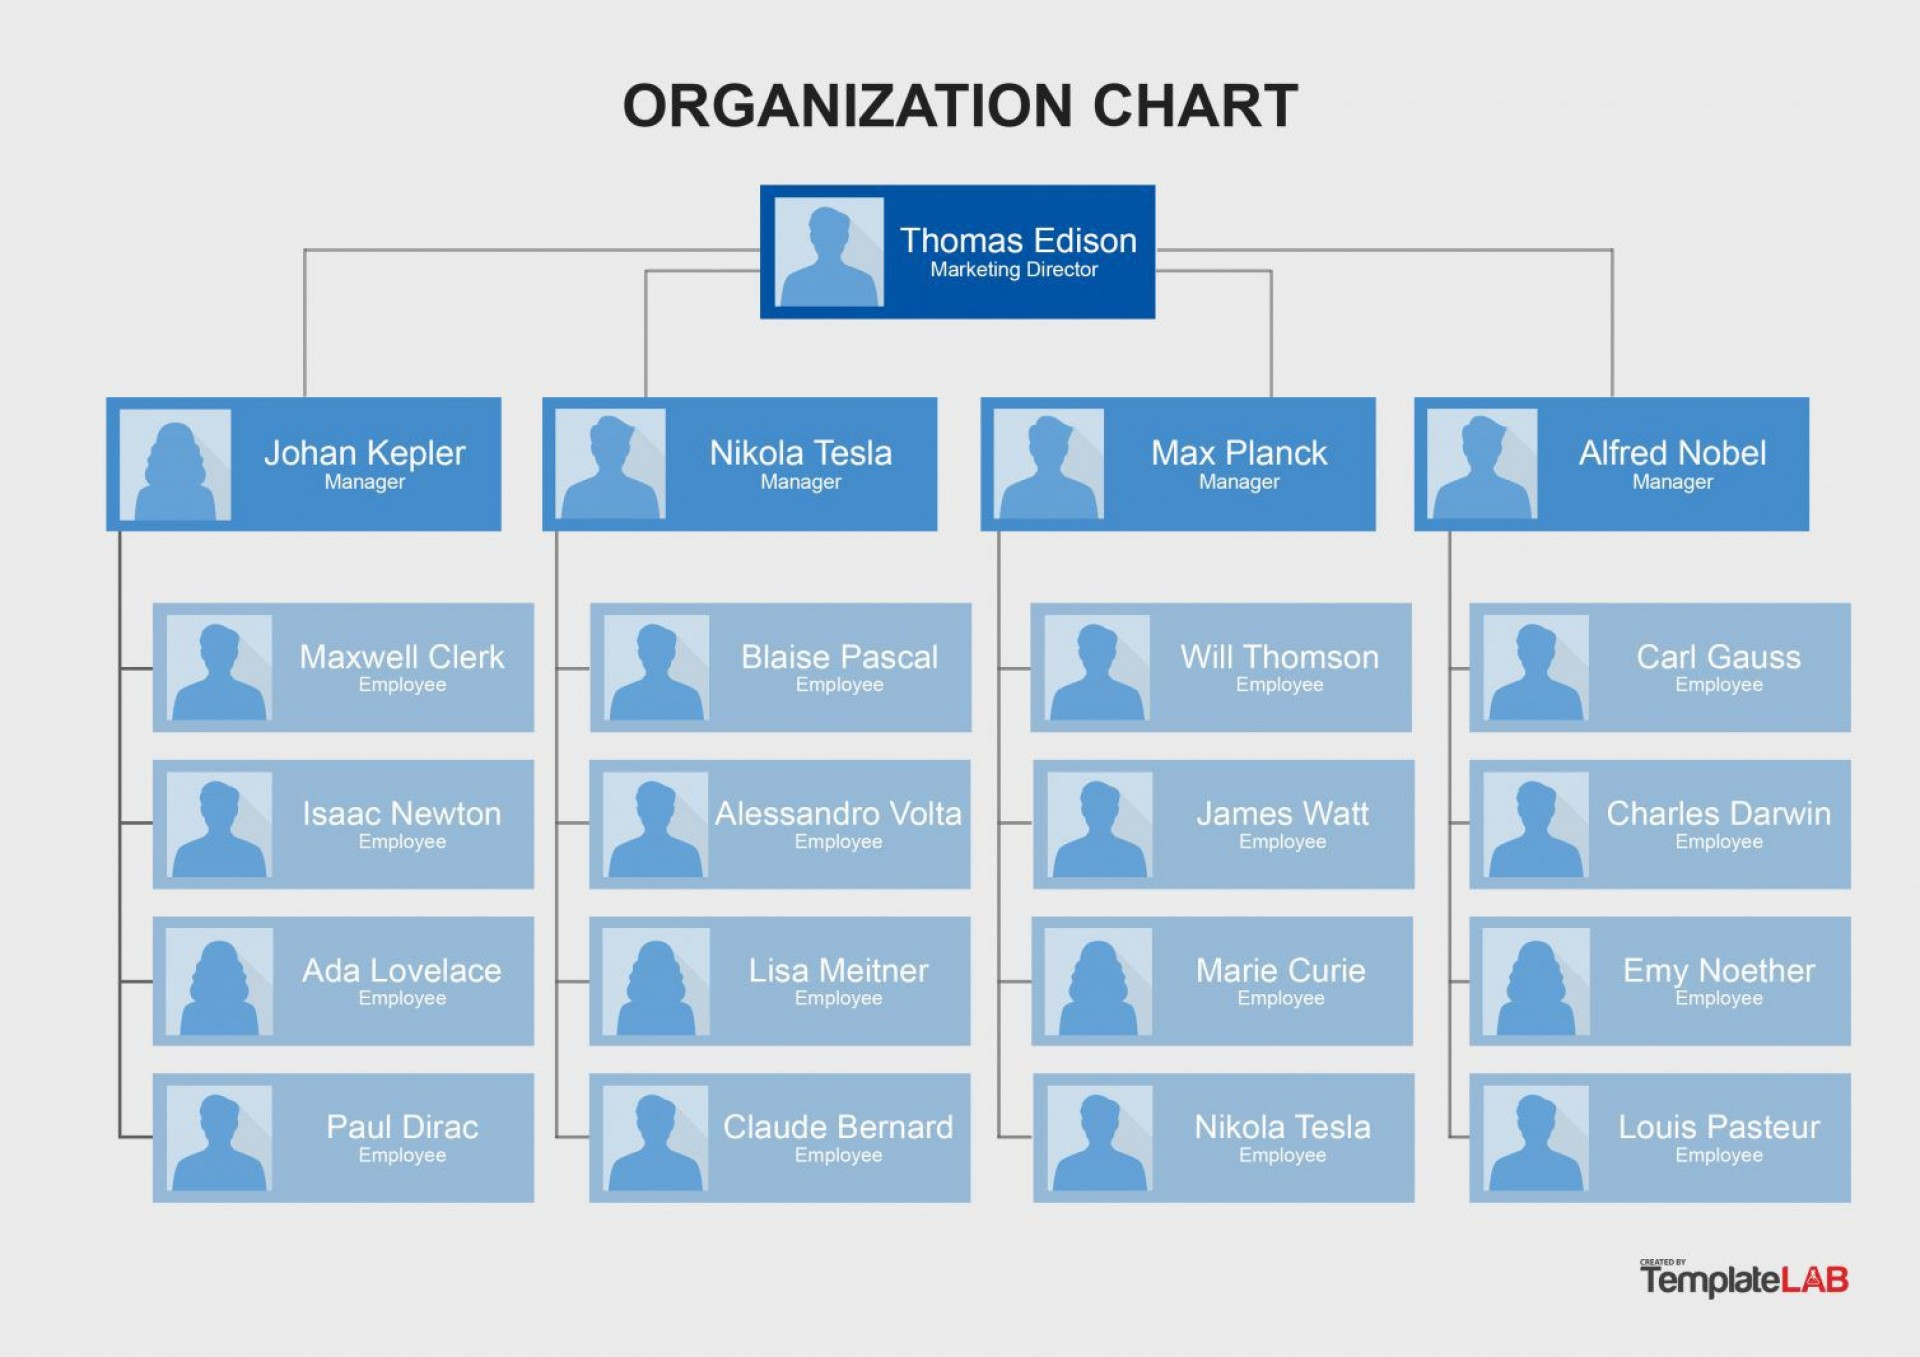 008 Best Microsoft Office Org Chart Template Idea  Templates M Organization Organizational1920